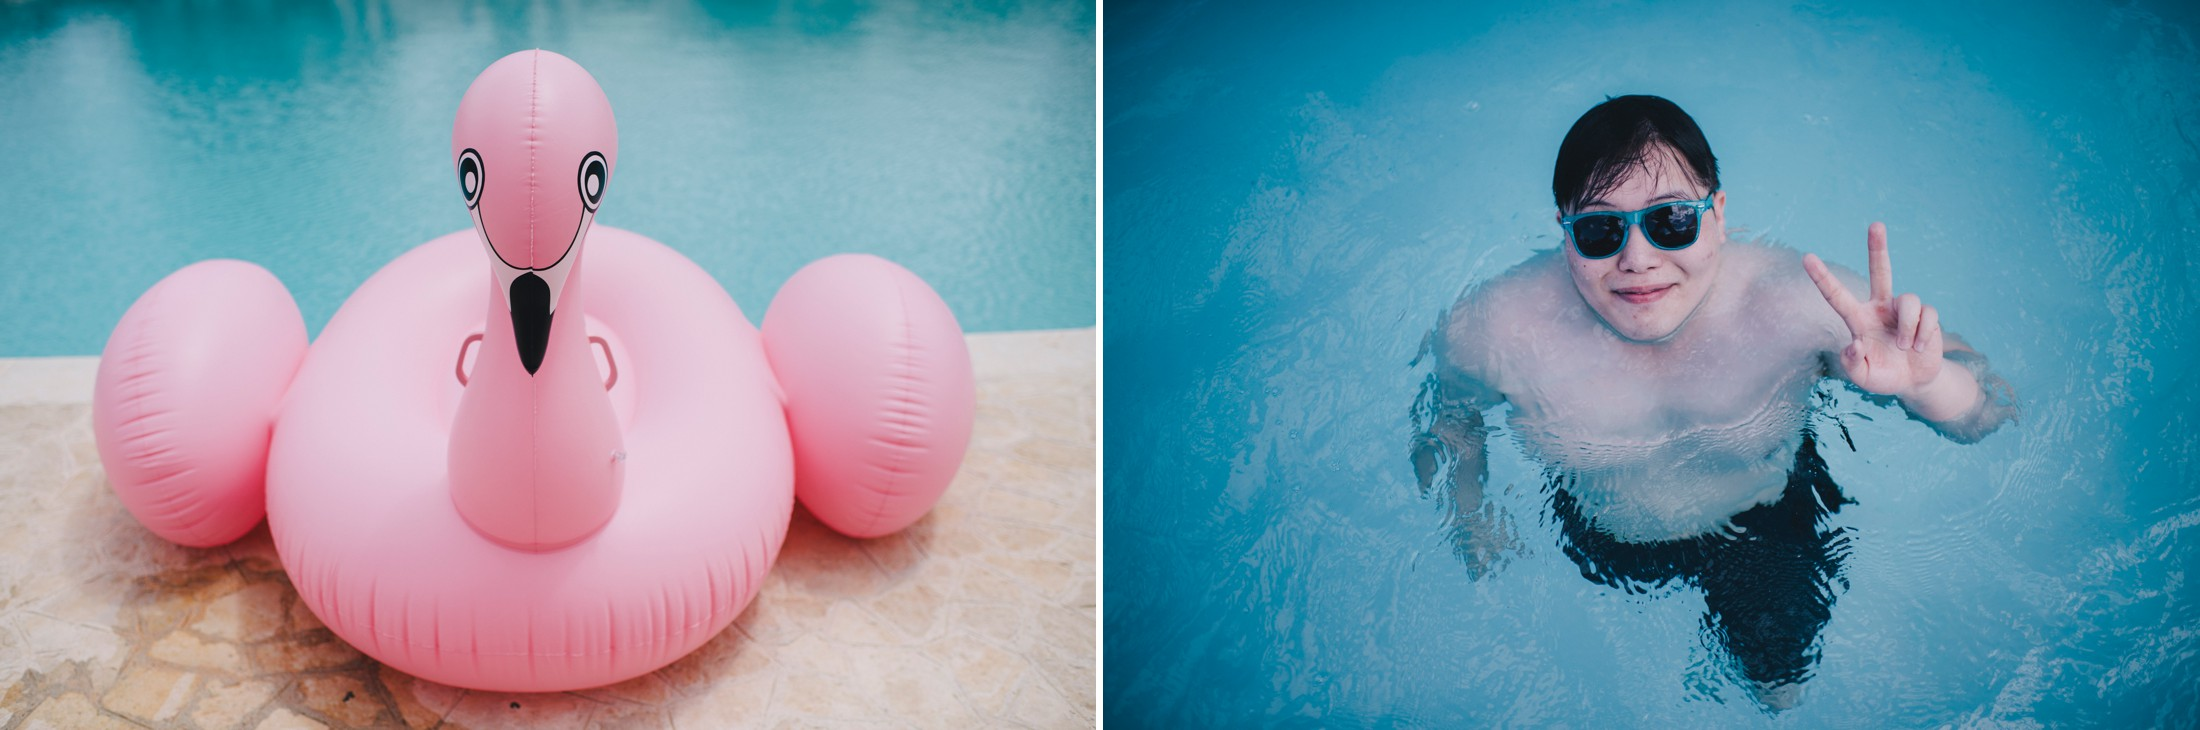 pink swan and a boy in the swimming pool with sun glasses